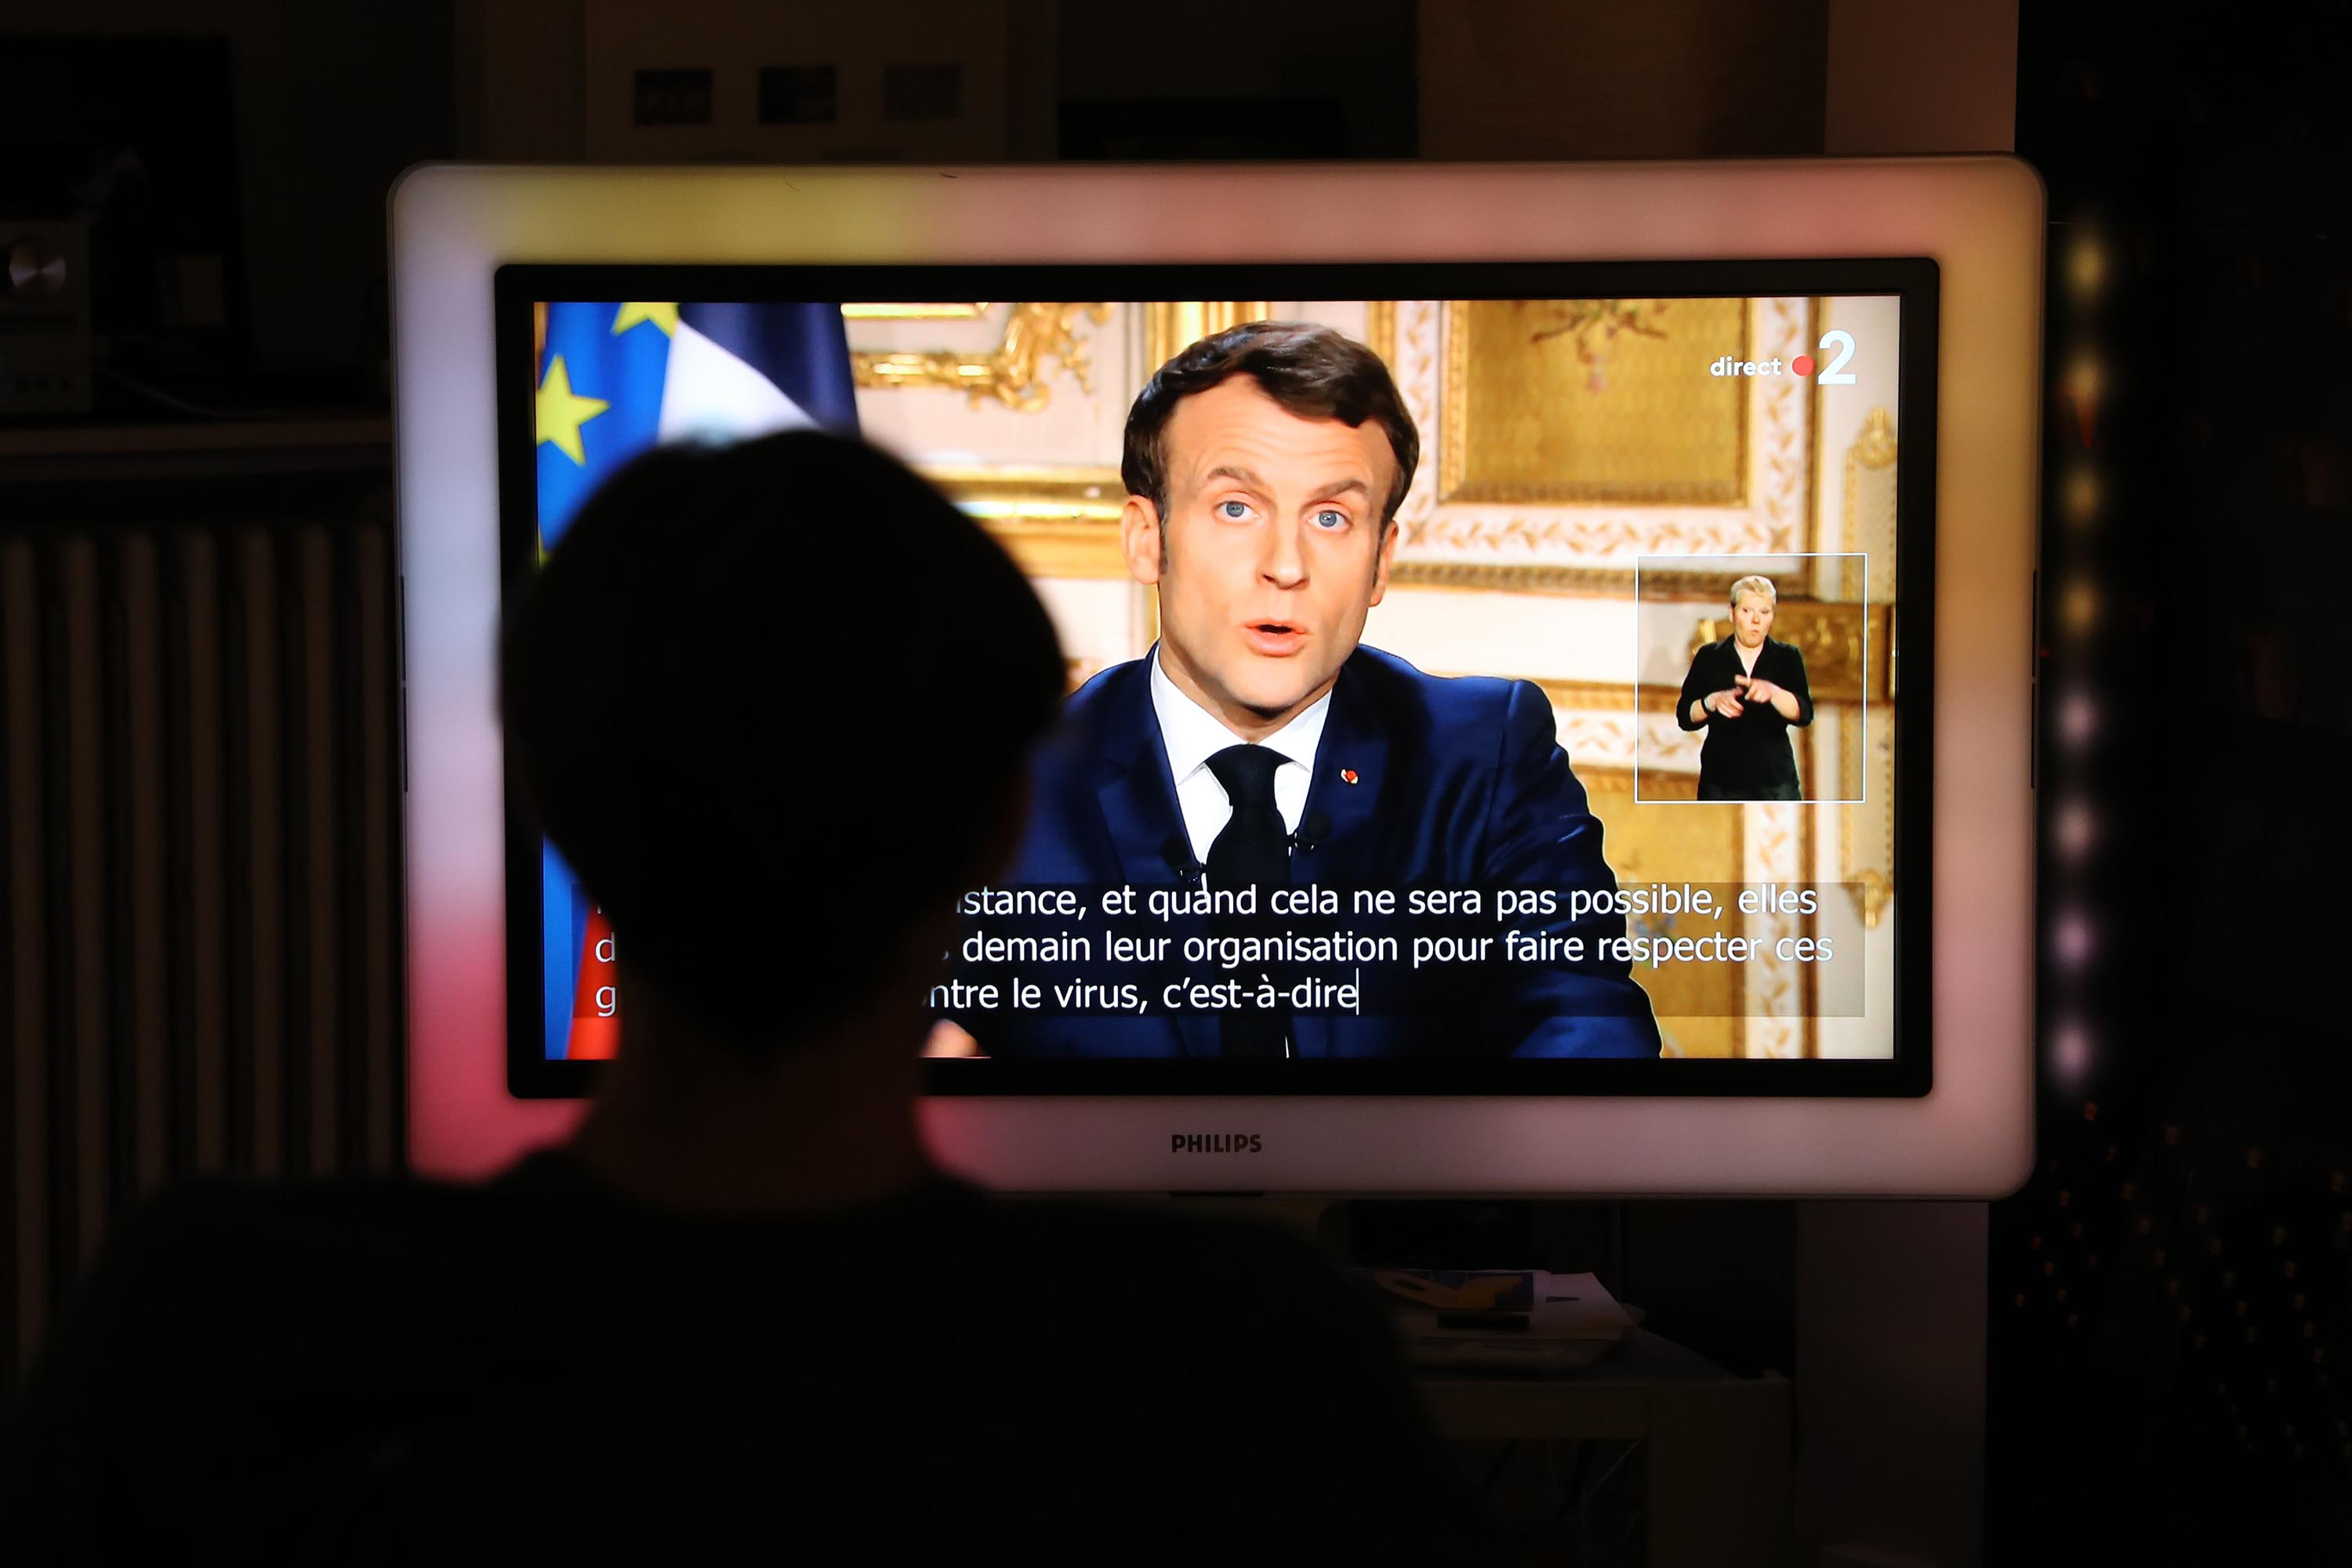 French President Emmanuel Macron is seen on a television screen on March 16 as he speaks during an address to the nation on the coronavirus outbreak.